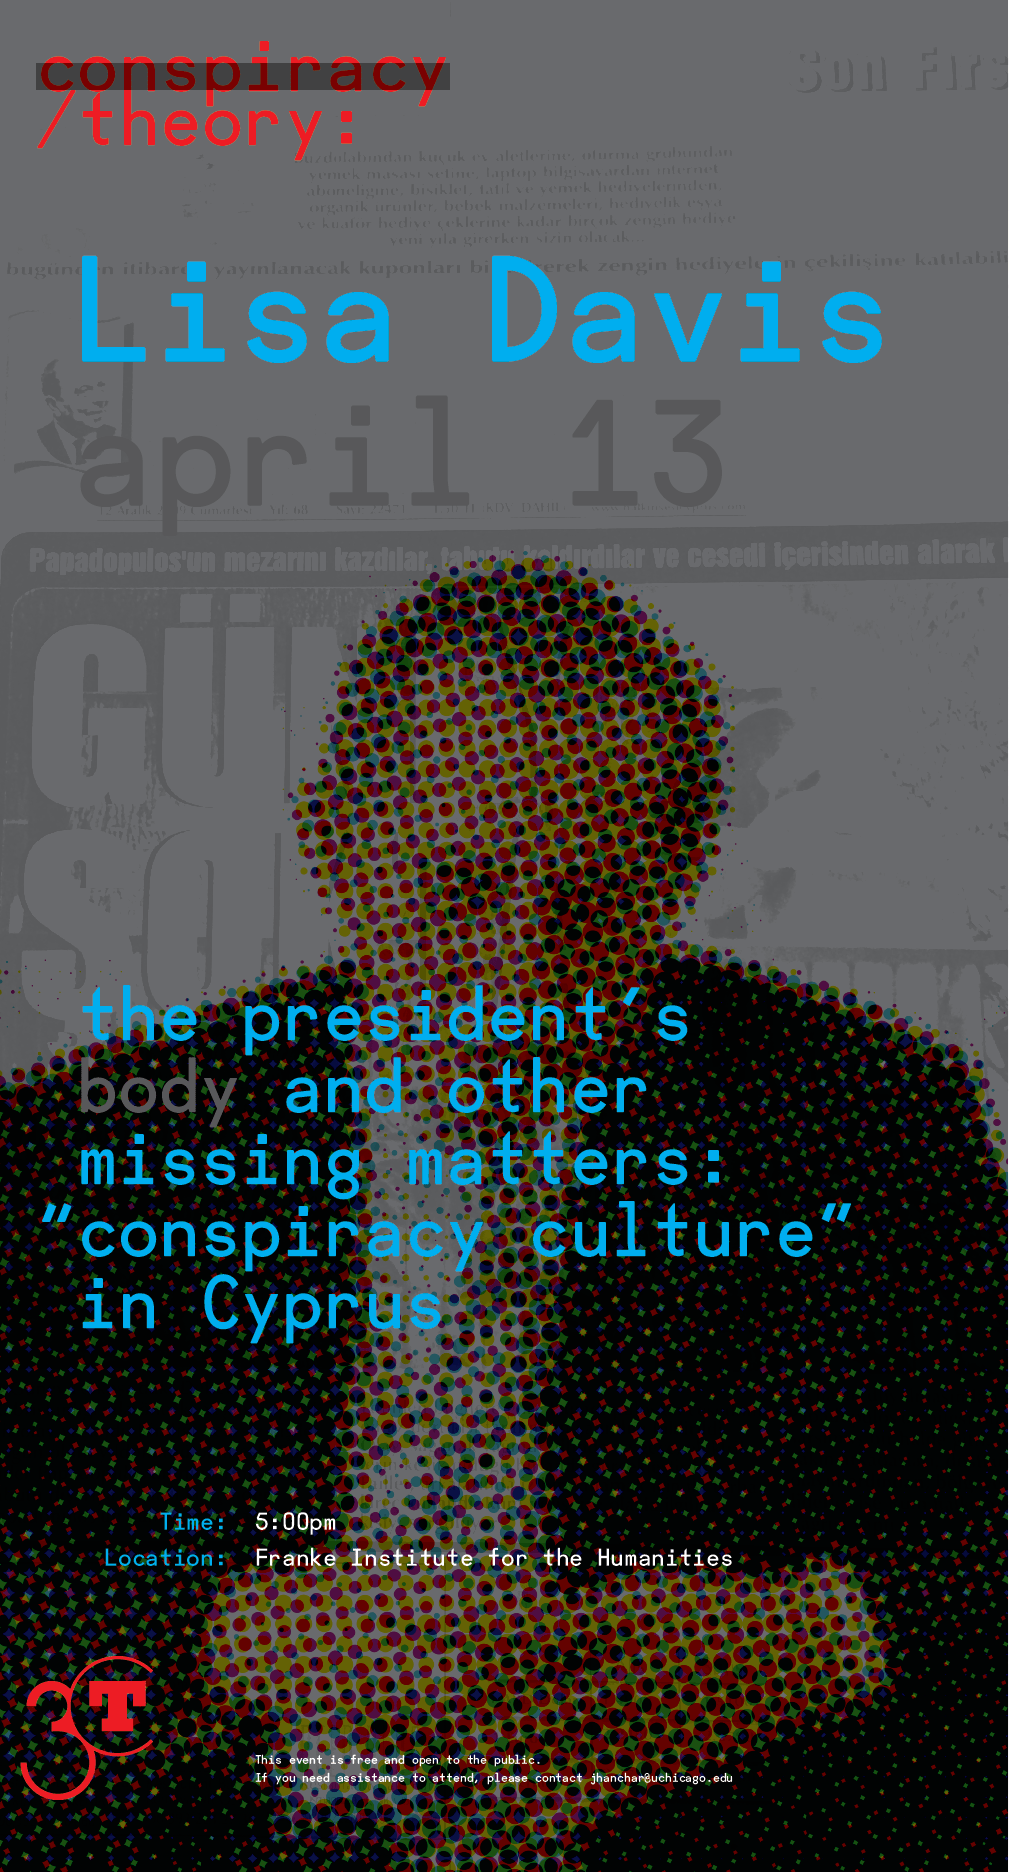 poster for Lisa Davis Conspiracy/Theory event, photo of figure in a suit looking down overlaid with text